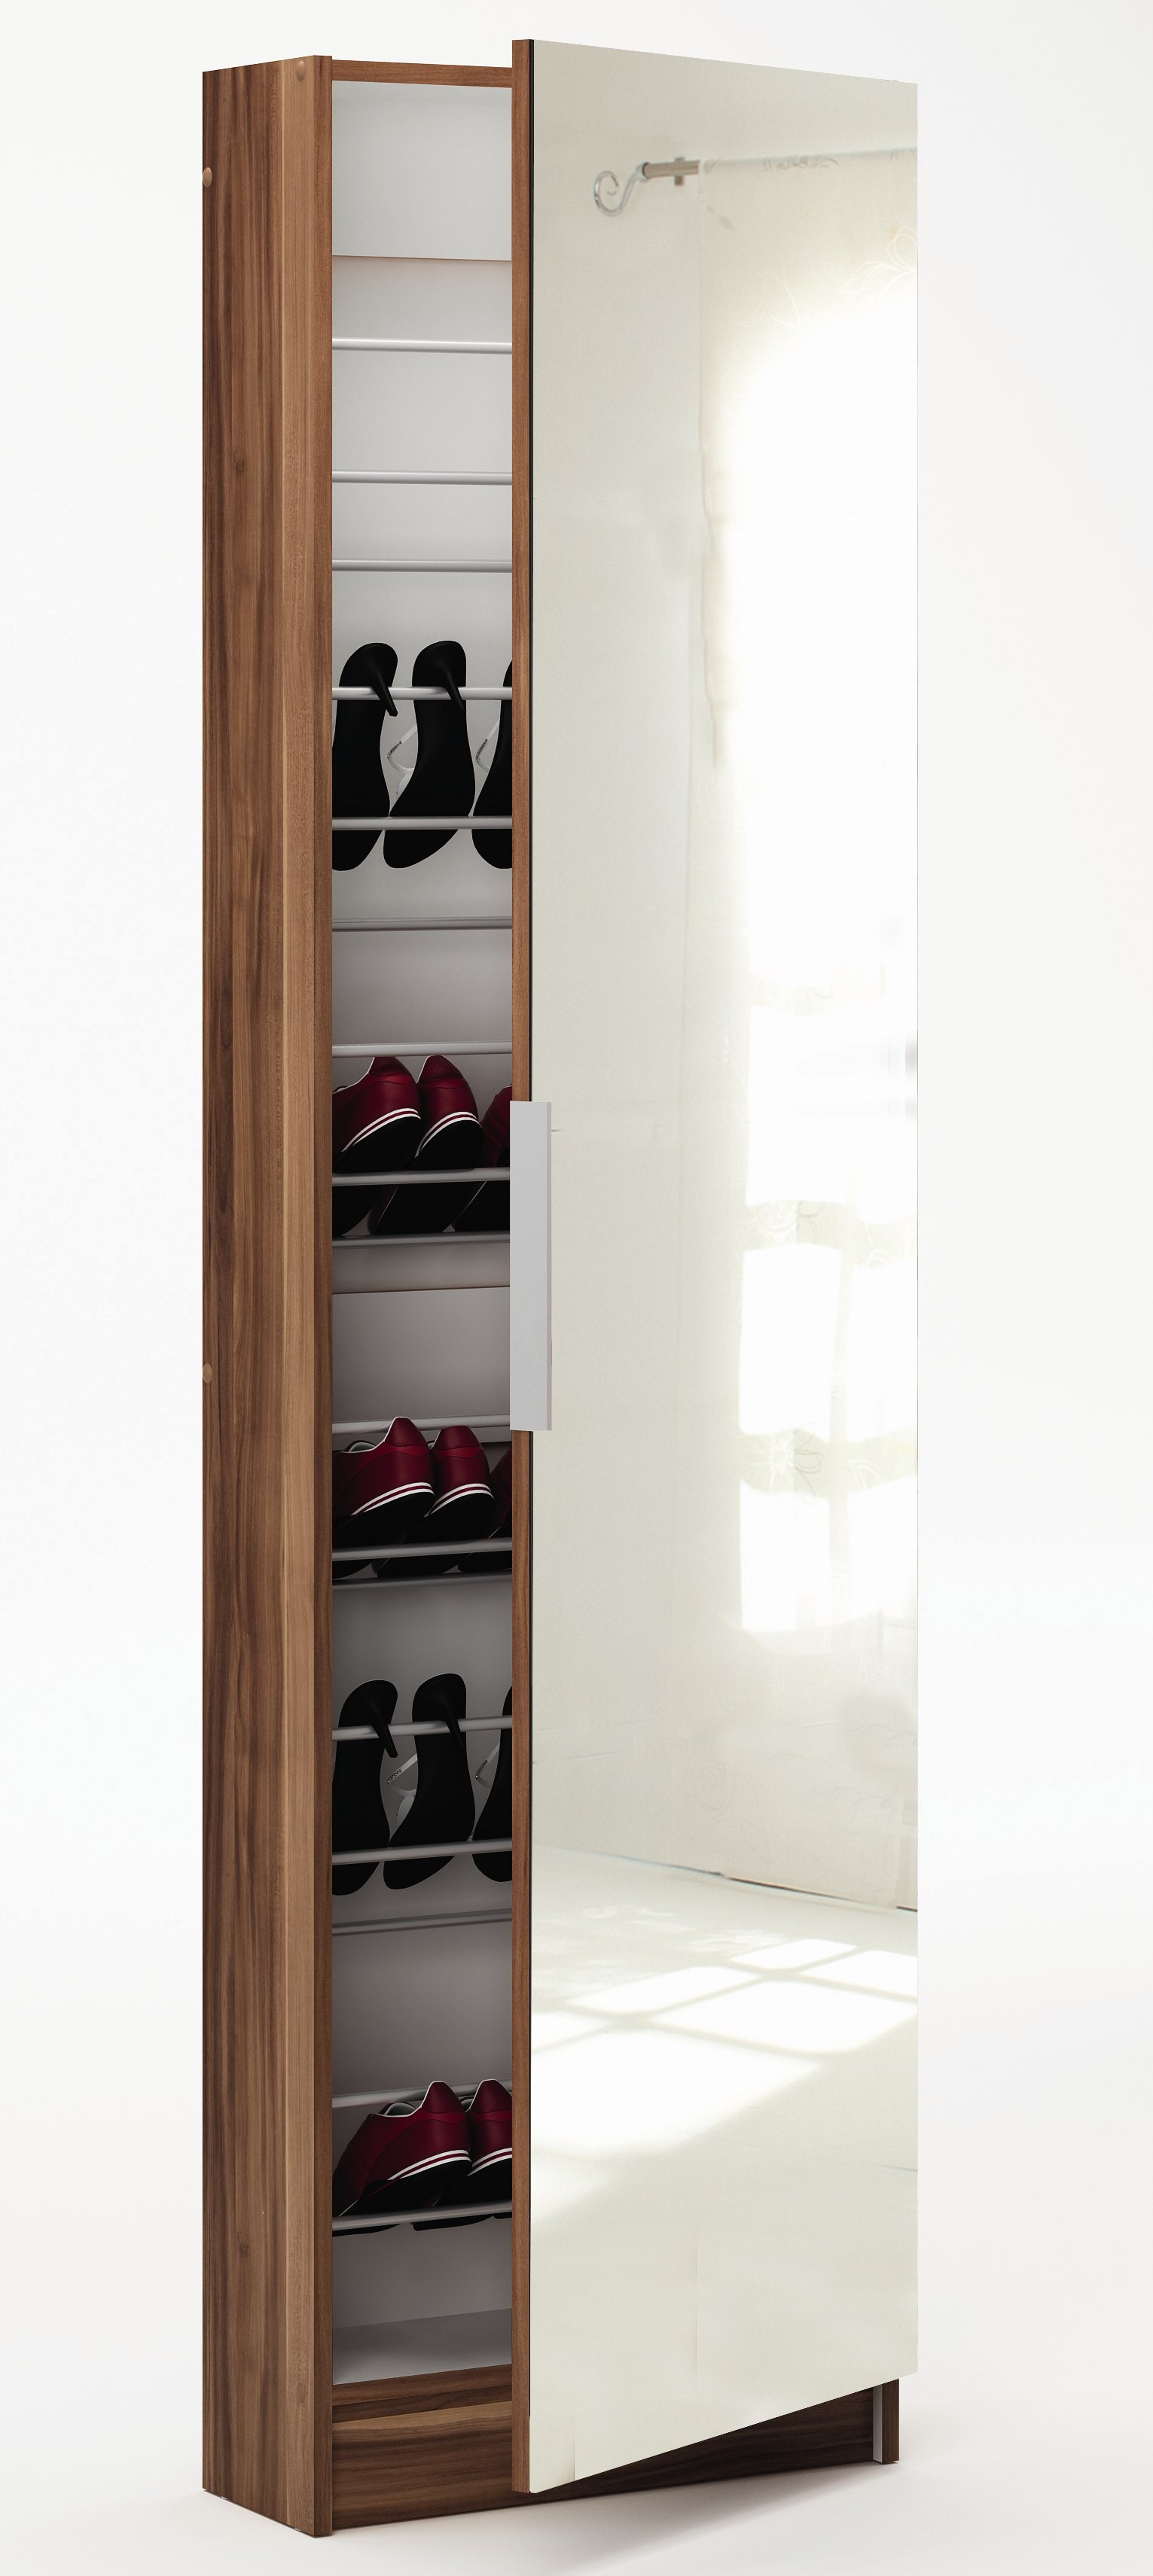 meuble chaussures alinea id es de d coration int rieure. Black Bedroom Furniture Sets. Home Design Ideas